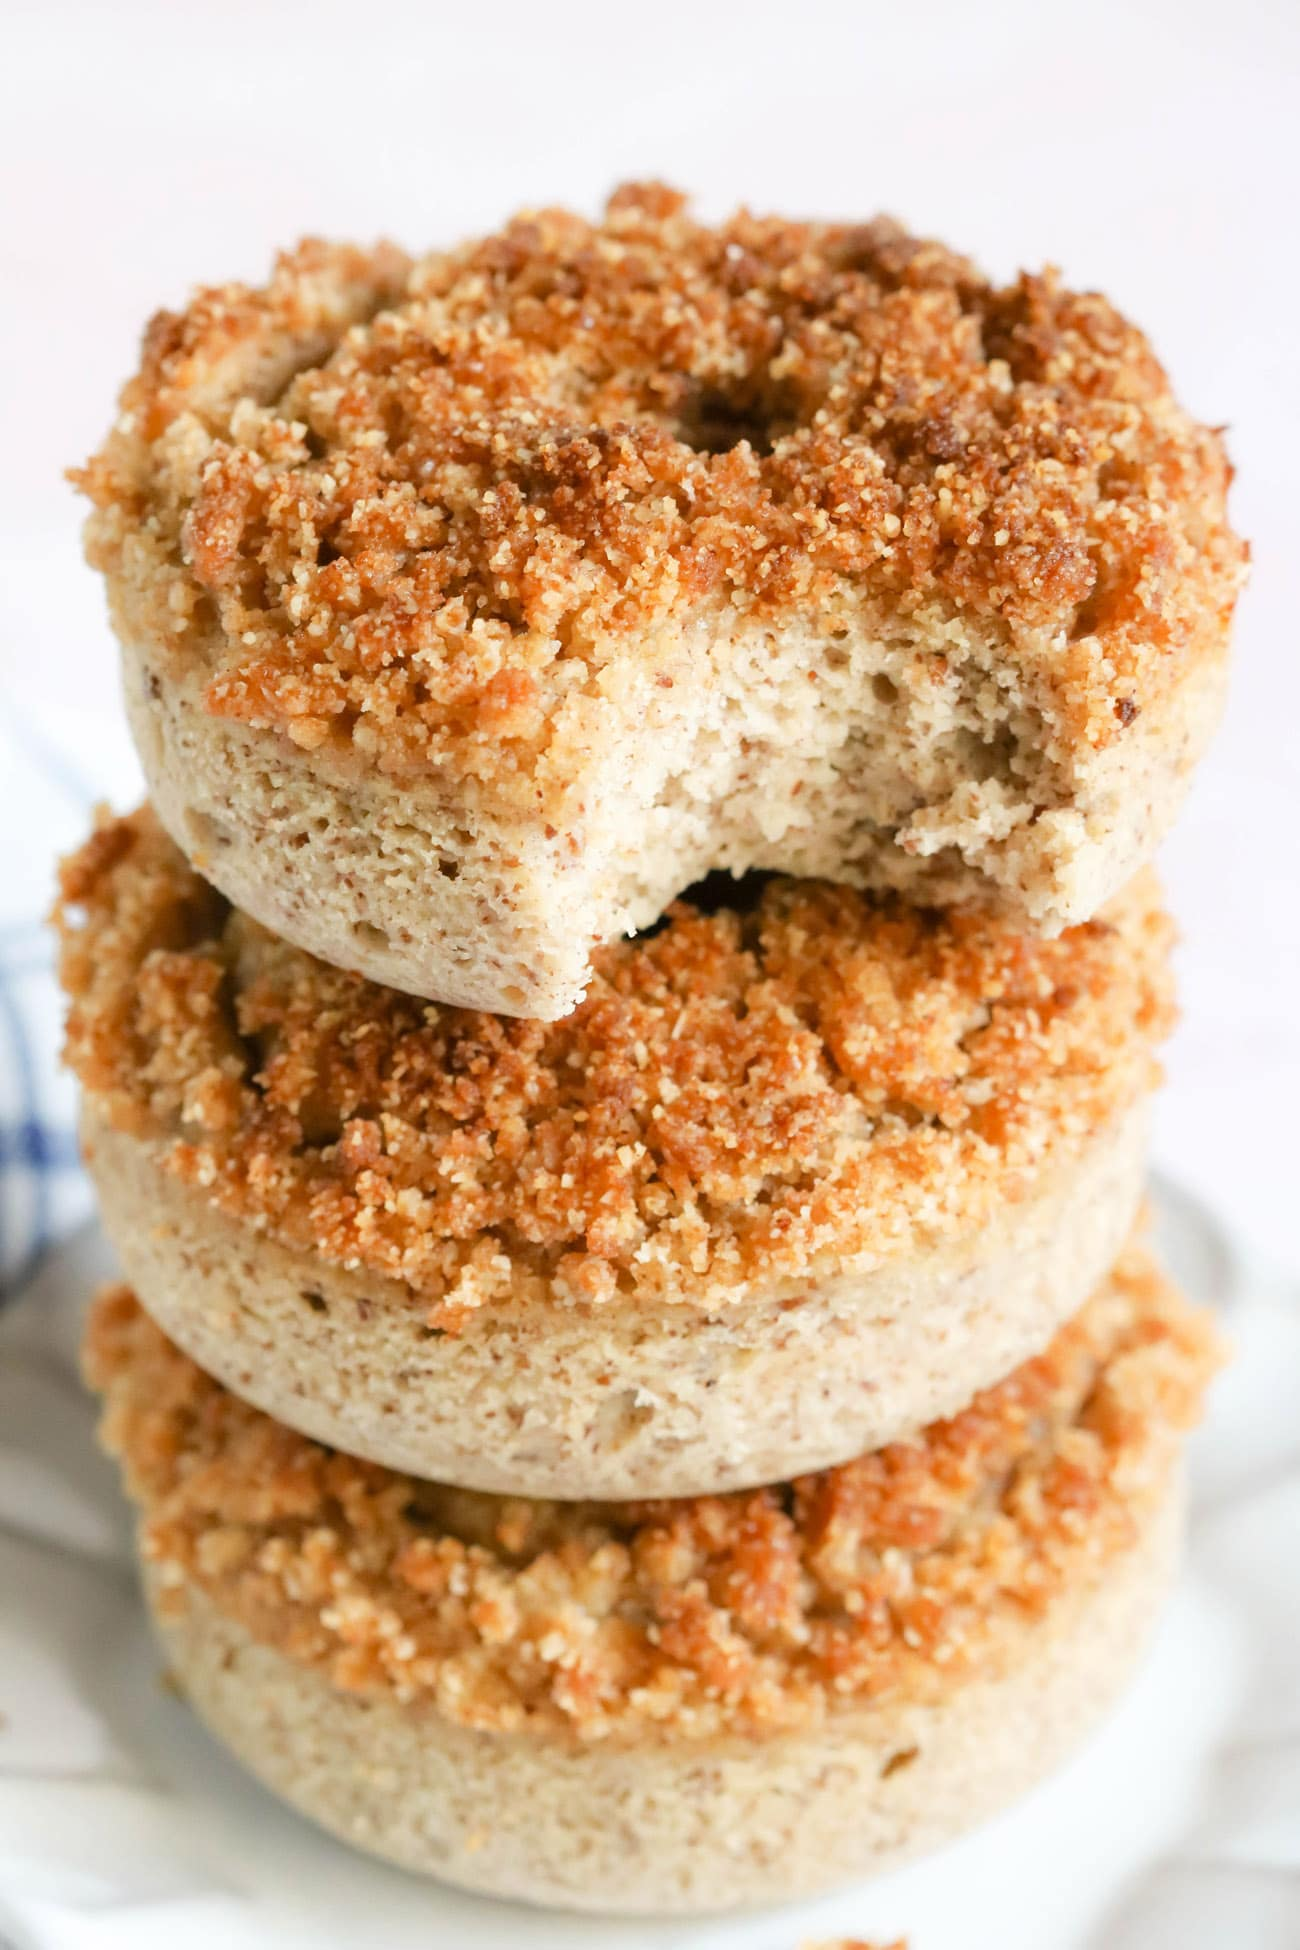 These easy BakedCrumb Donuts are rich, sweet, full of vanilla flavor, and a coffee cake-like crumb topping. Every bite is buttery and satisfying. You'd never know these donuts are gluten free, high protein, high fiber, and low sugar!